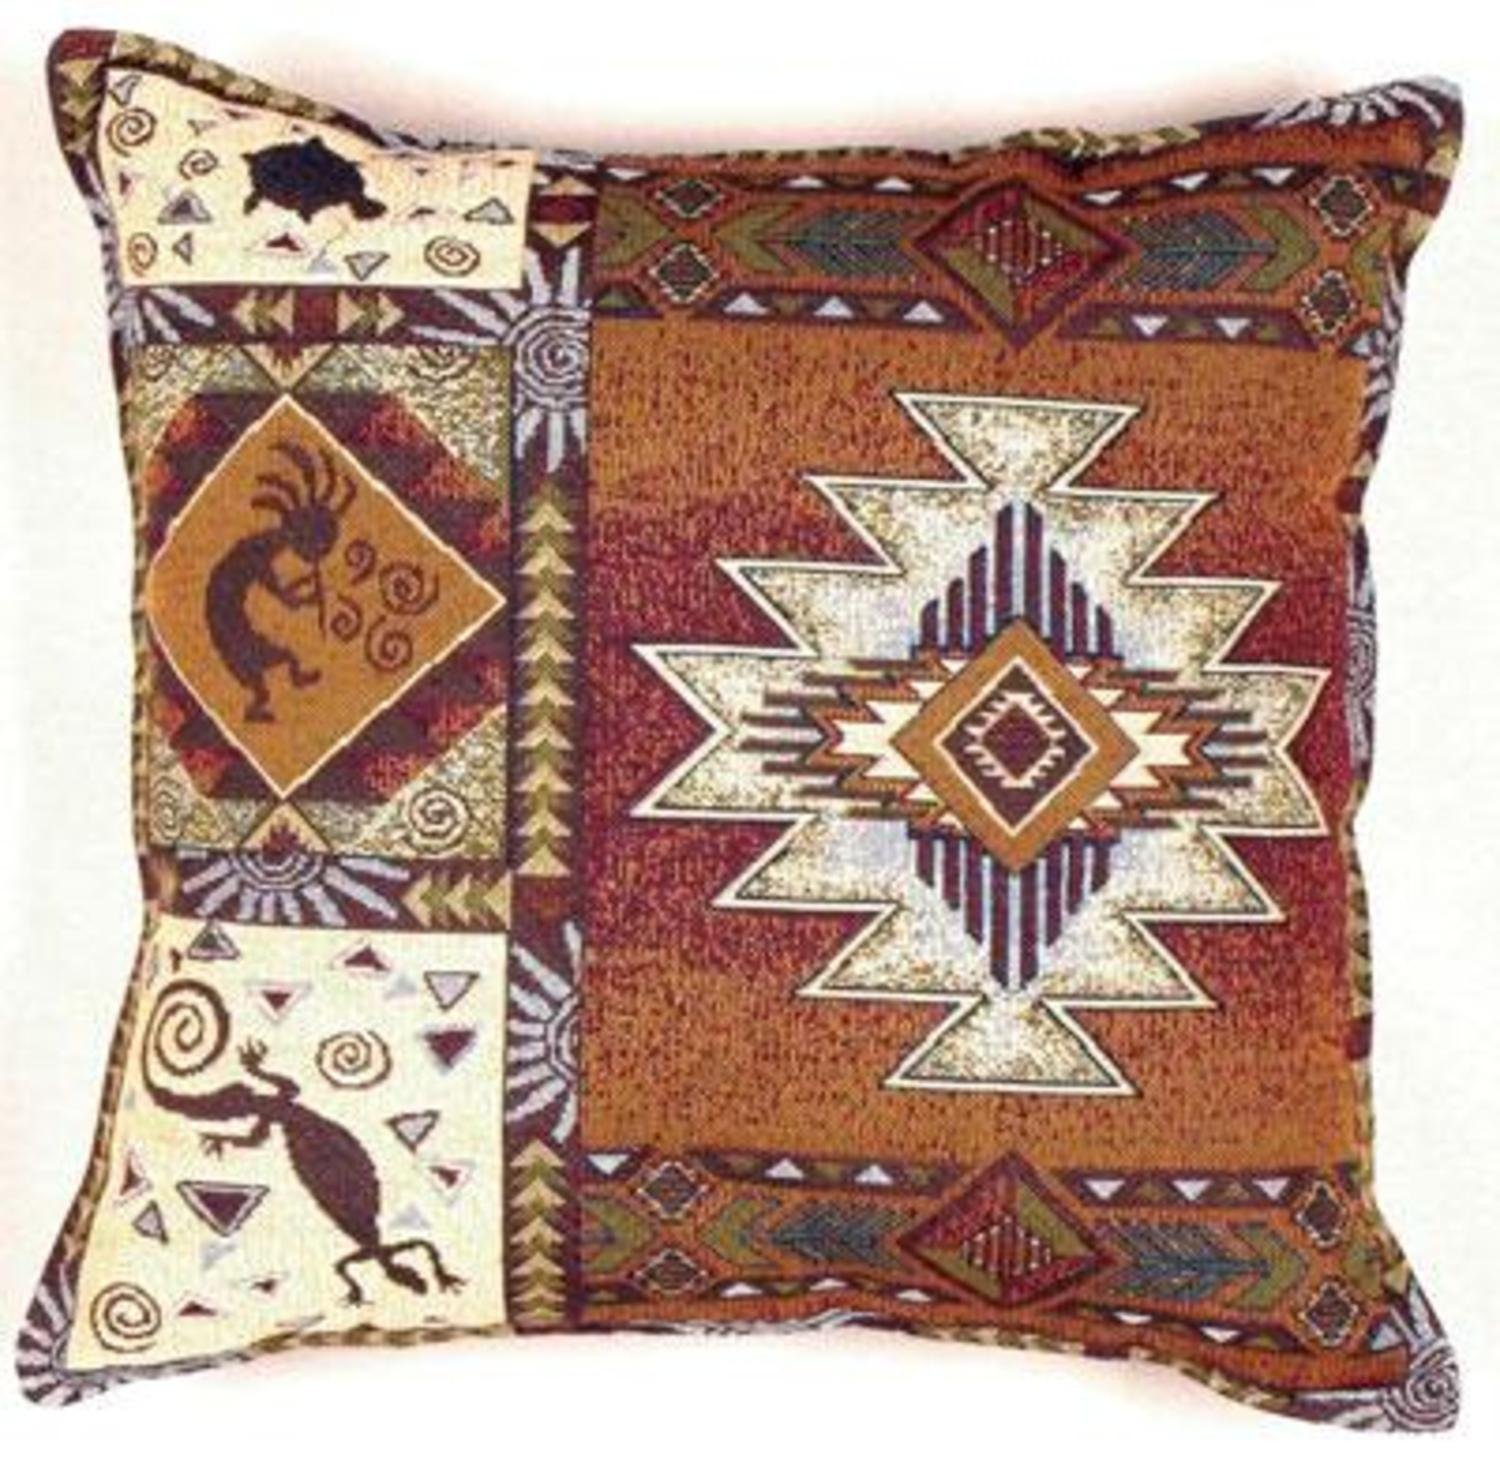 Kokopelli Southwestern Decorative Tapestry Toss Pillow Southwestern Style Native American Style Casual Style By Simply Home Ship From Us Walmart Com Walmart Com